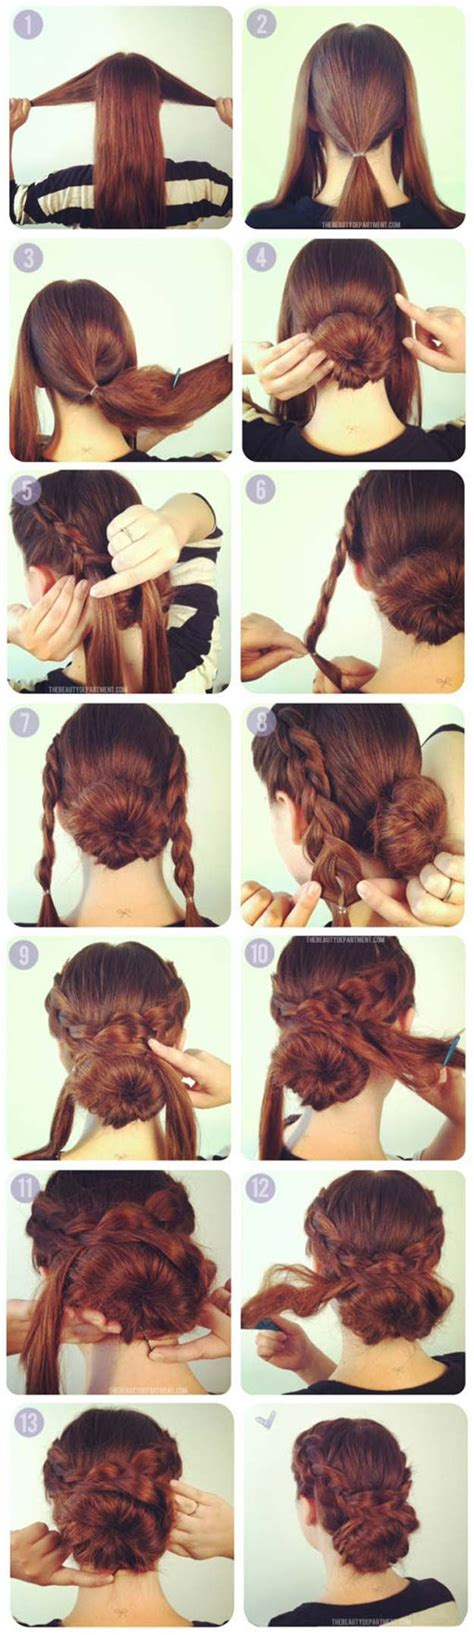 Hairstyles For School Step By Step Easy by Easy Step By Step Hairstyles For School Best Hairstyles